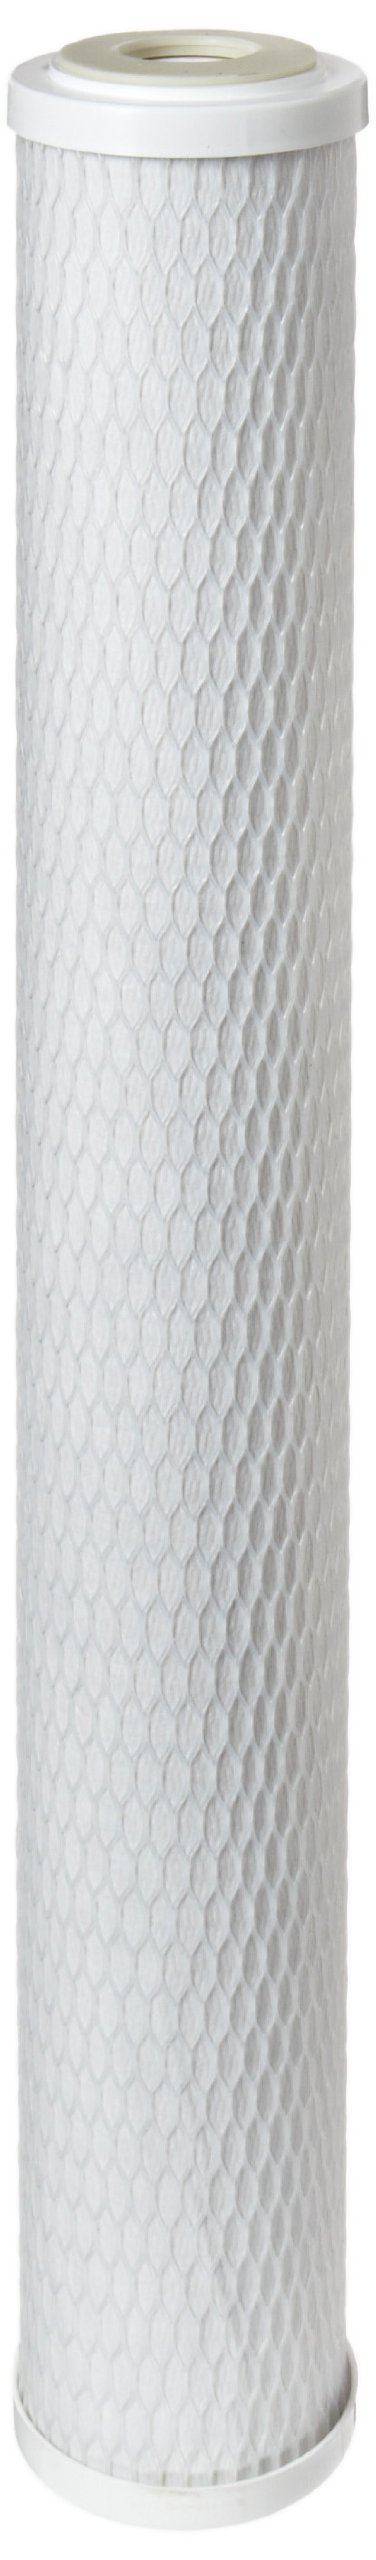 Pentek CBC-20 Carbon Block Filter Cartridge, 20'' x 2-7/8'', 0.5 Micron by Pentek